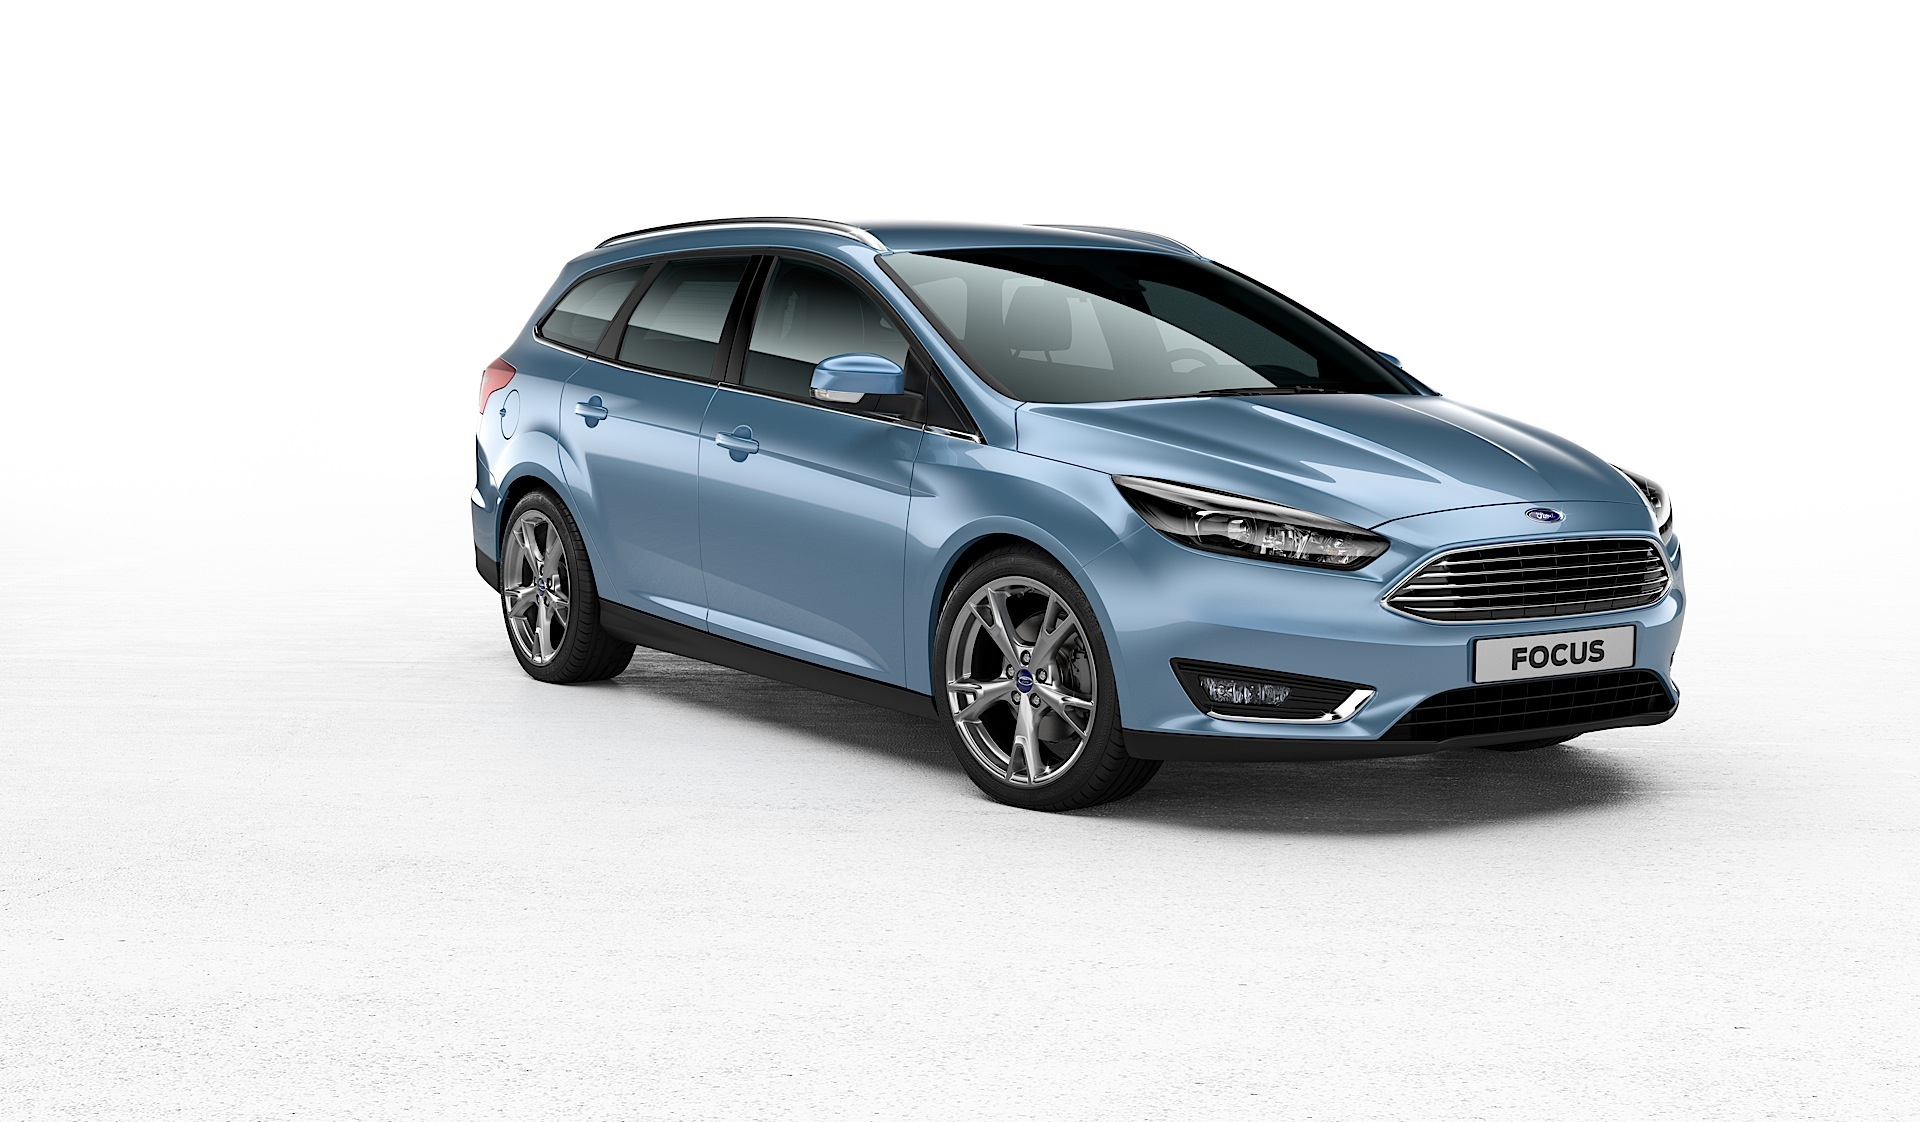 ... FORD Focus Estate (2014 - Present) ...  sc 1 st  Autoevolution & FORD Focus Estate specs - 2014 2015 2016 2017 - autoevolution markmcfarlin.com